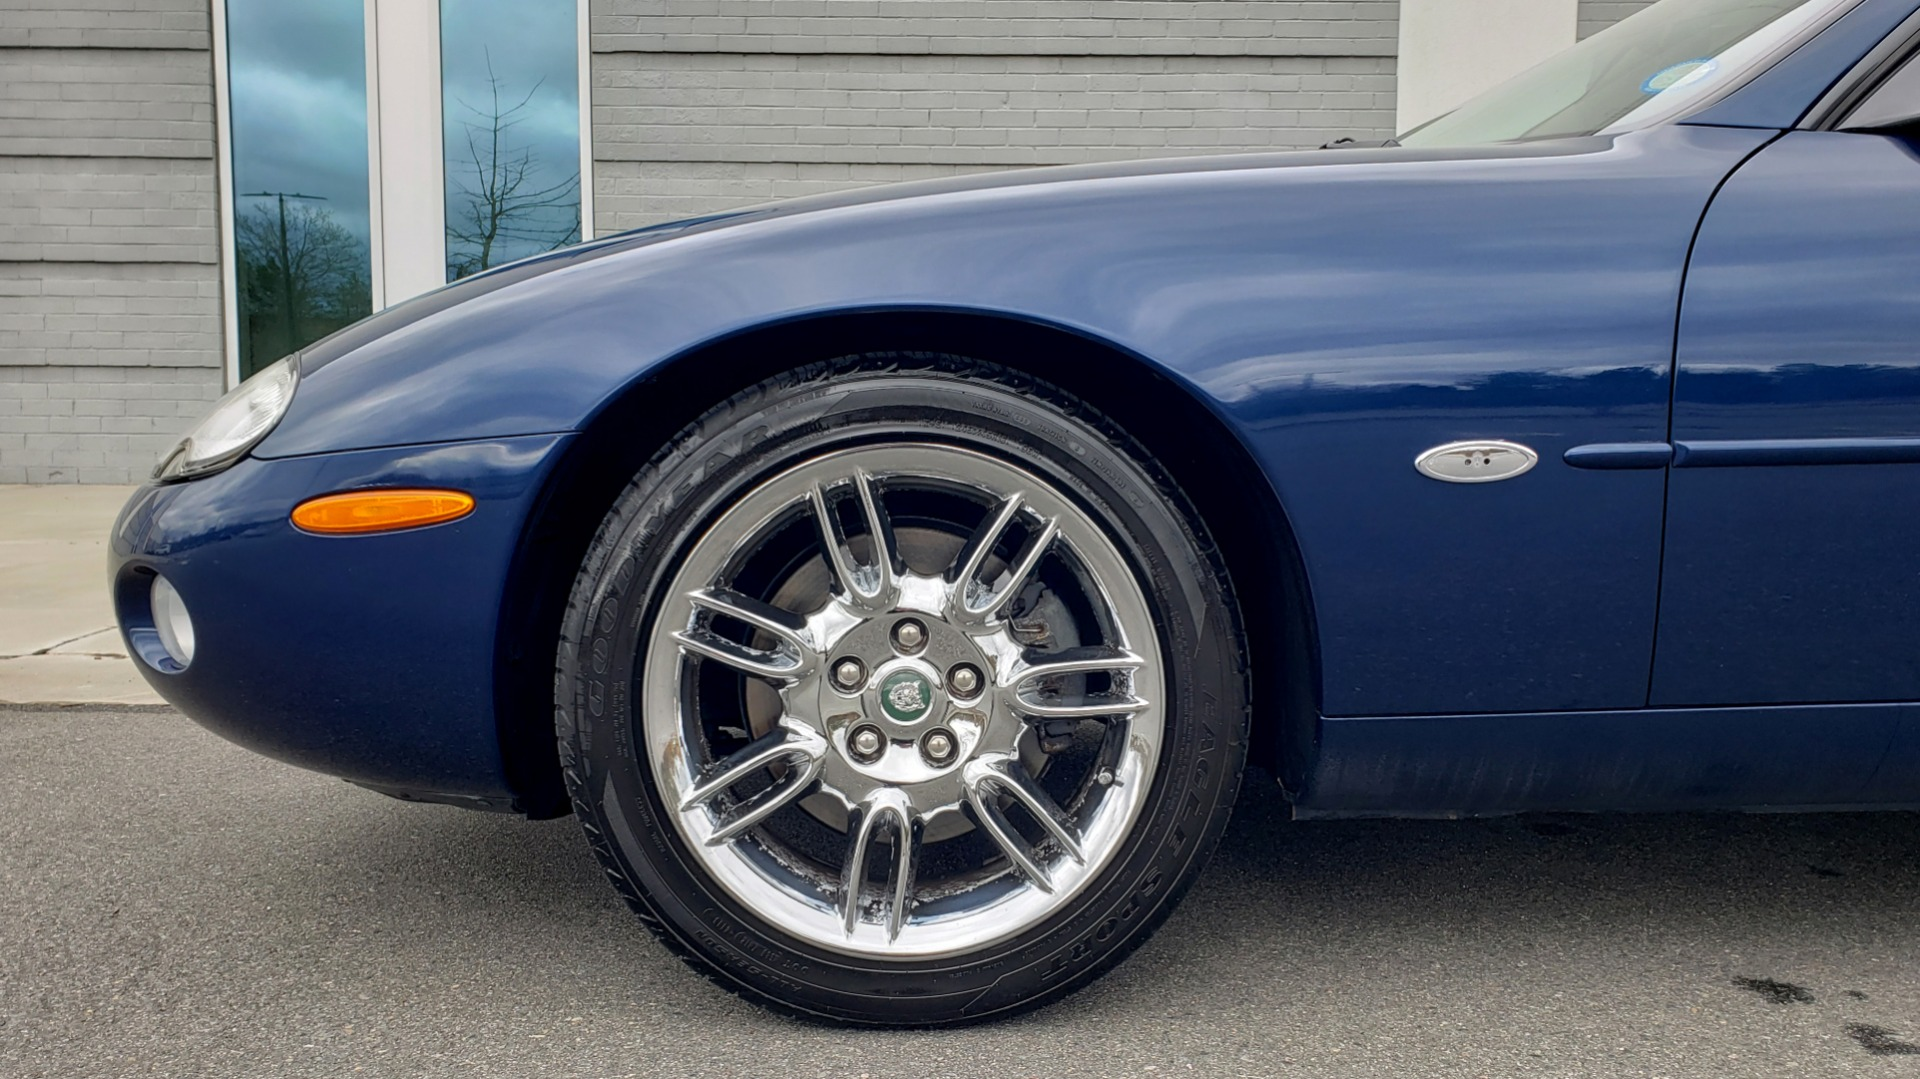 Used 2002 Jaguar XK8 COUPE / 4.0L V8 / 5-SPD AUTO / ALPINE SOUND / 18IN CHROME WHEELS for sale $16,450 at Formula Imports in Charlotte NC 28227 72